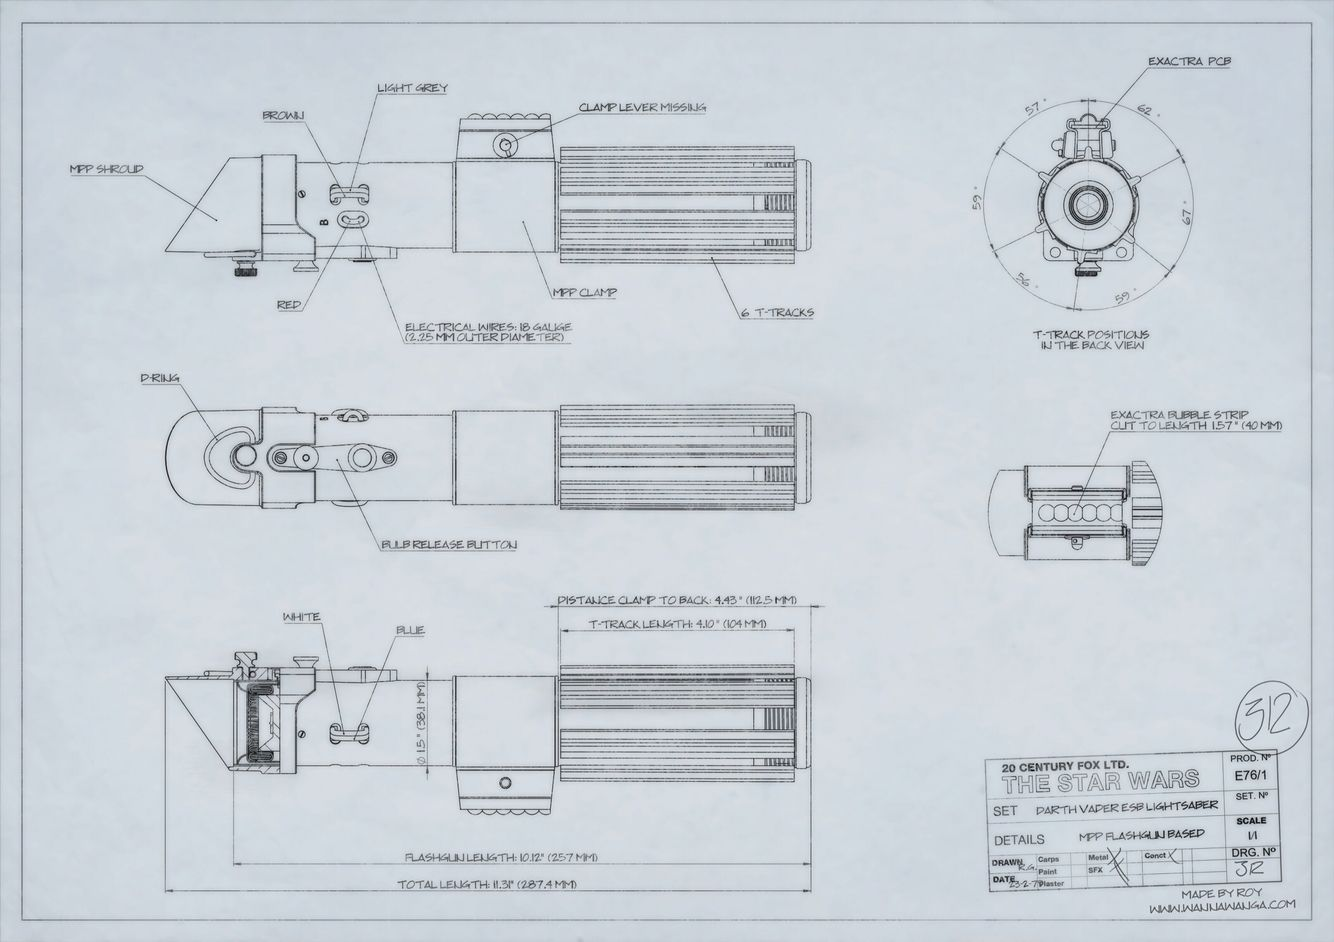 darth vader esb lightsaber blueprint wannawanga com blueprints on light wiring diagram  [ 1334 x 942 Pixel ]